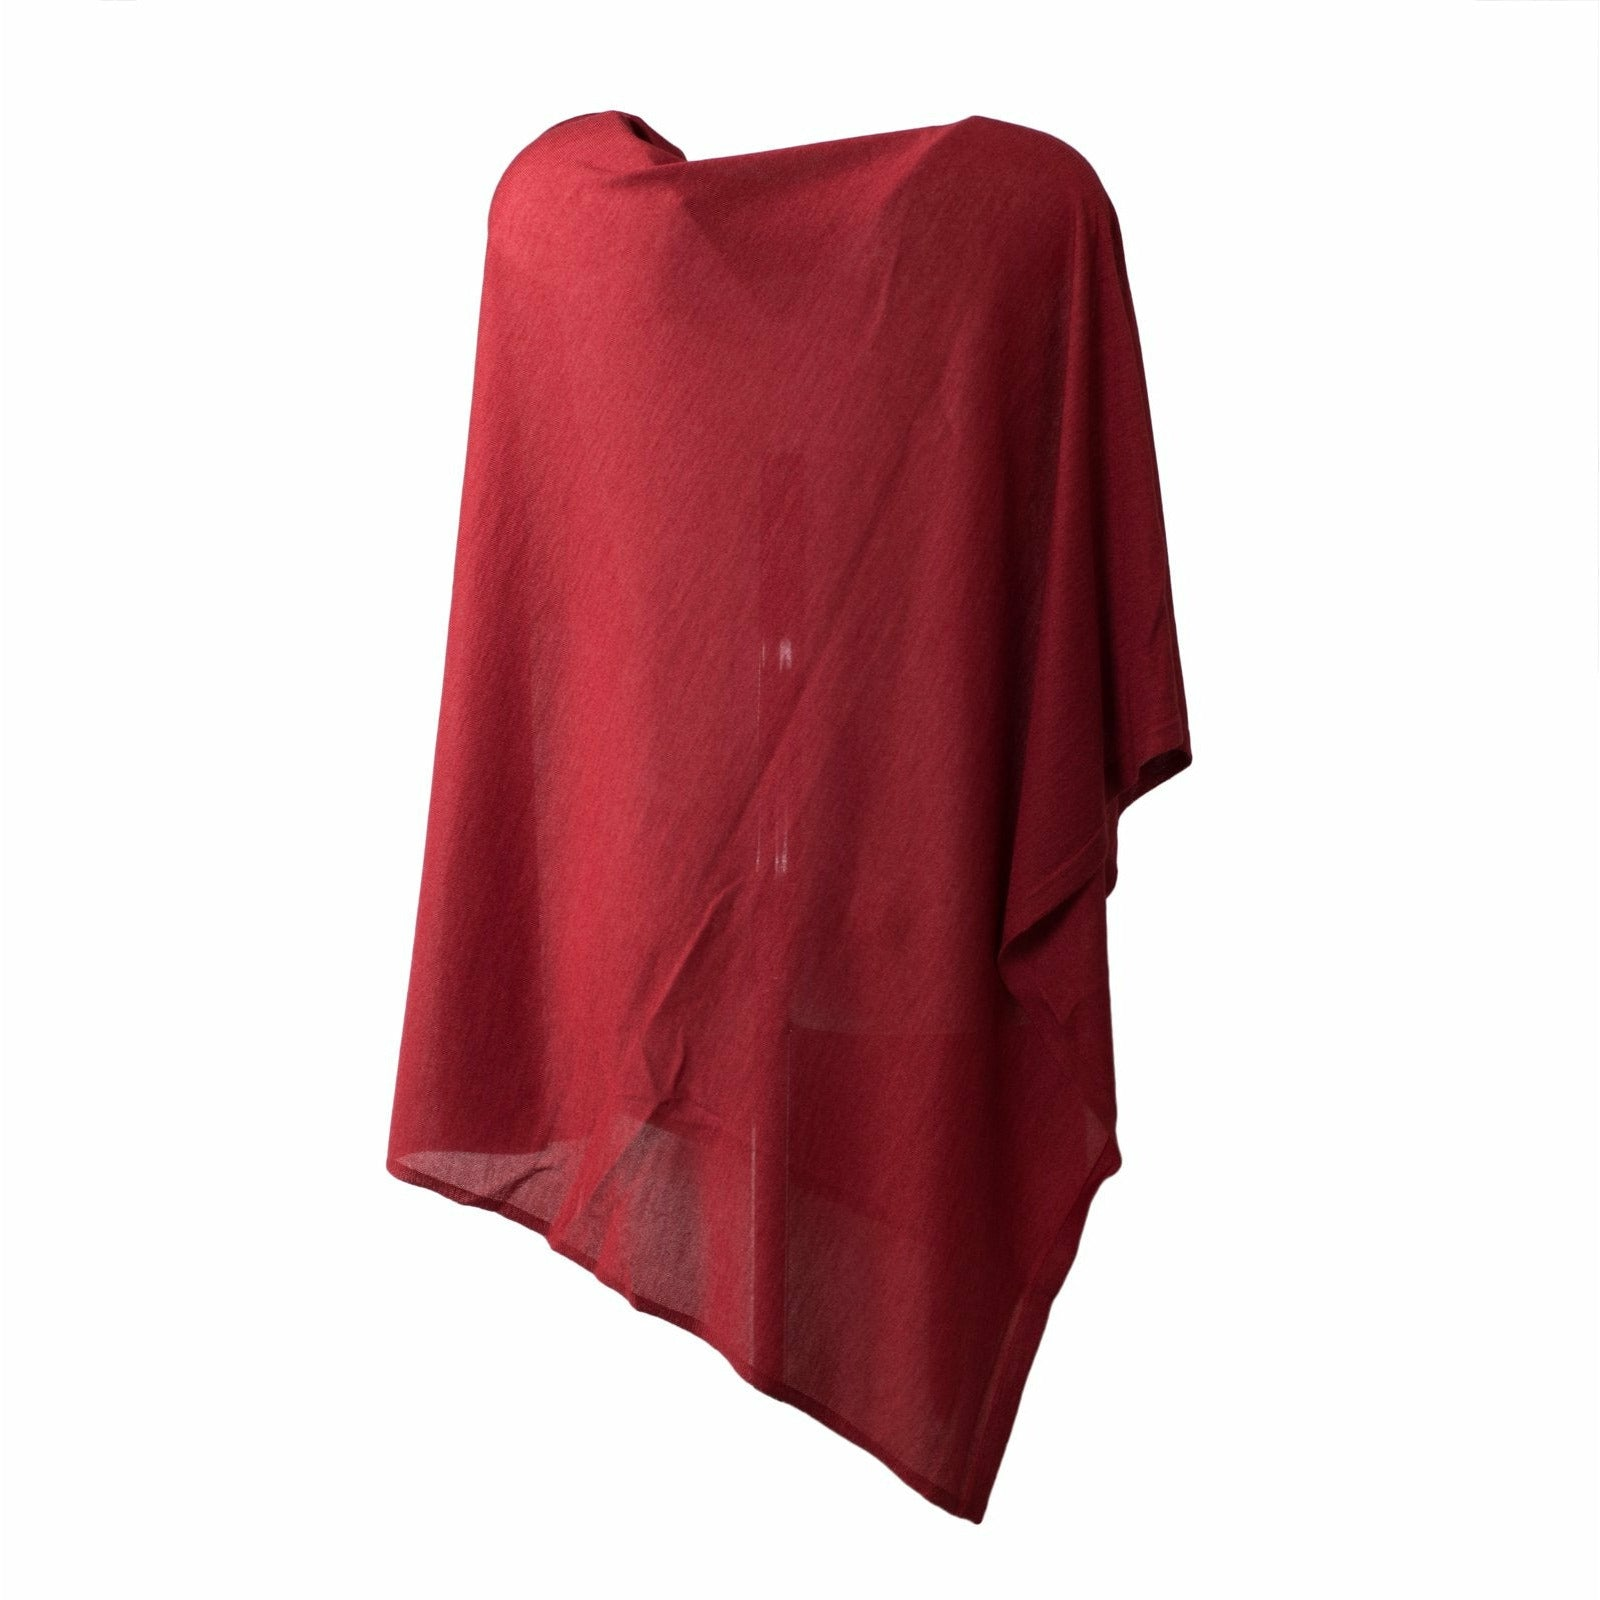 Large Pashmina Poncho in Red - Jennifer Tattanelli